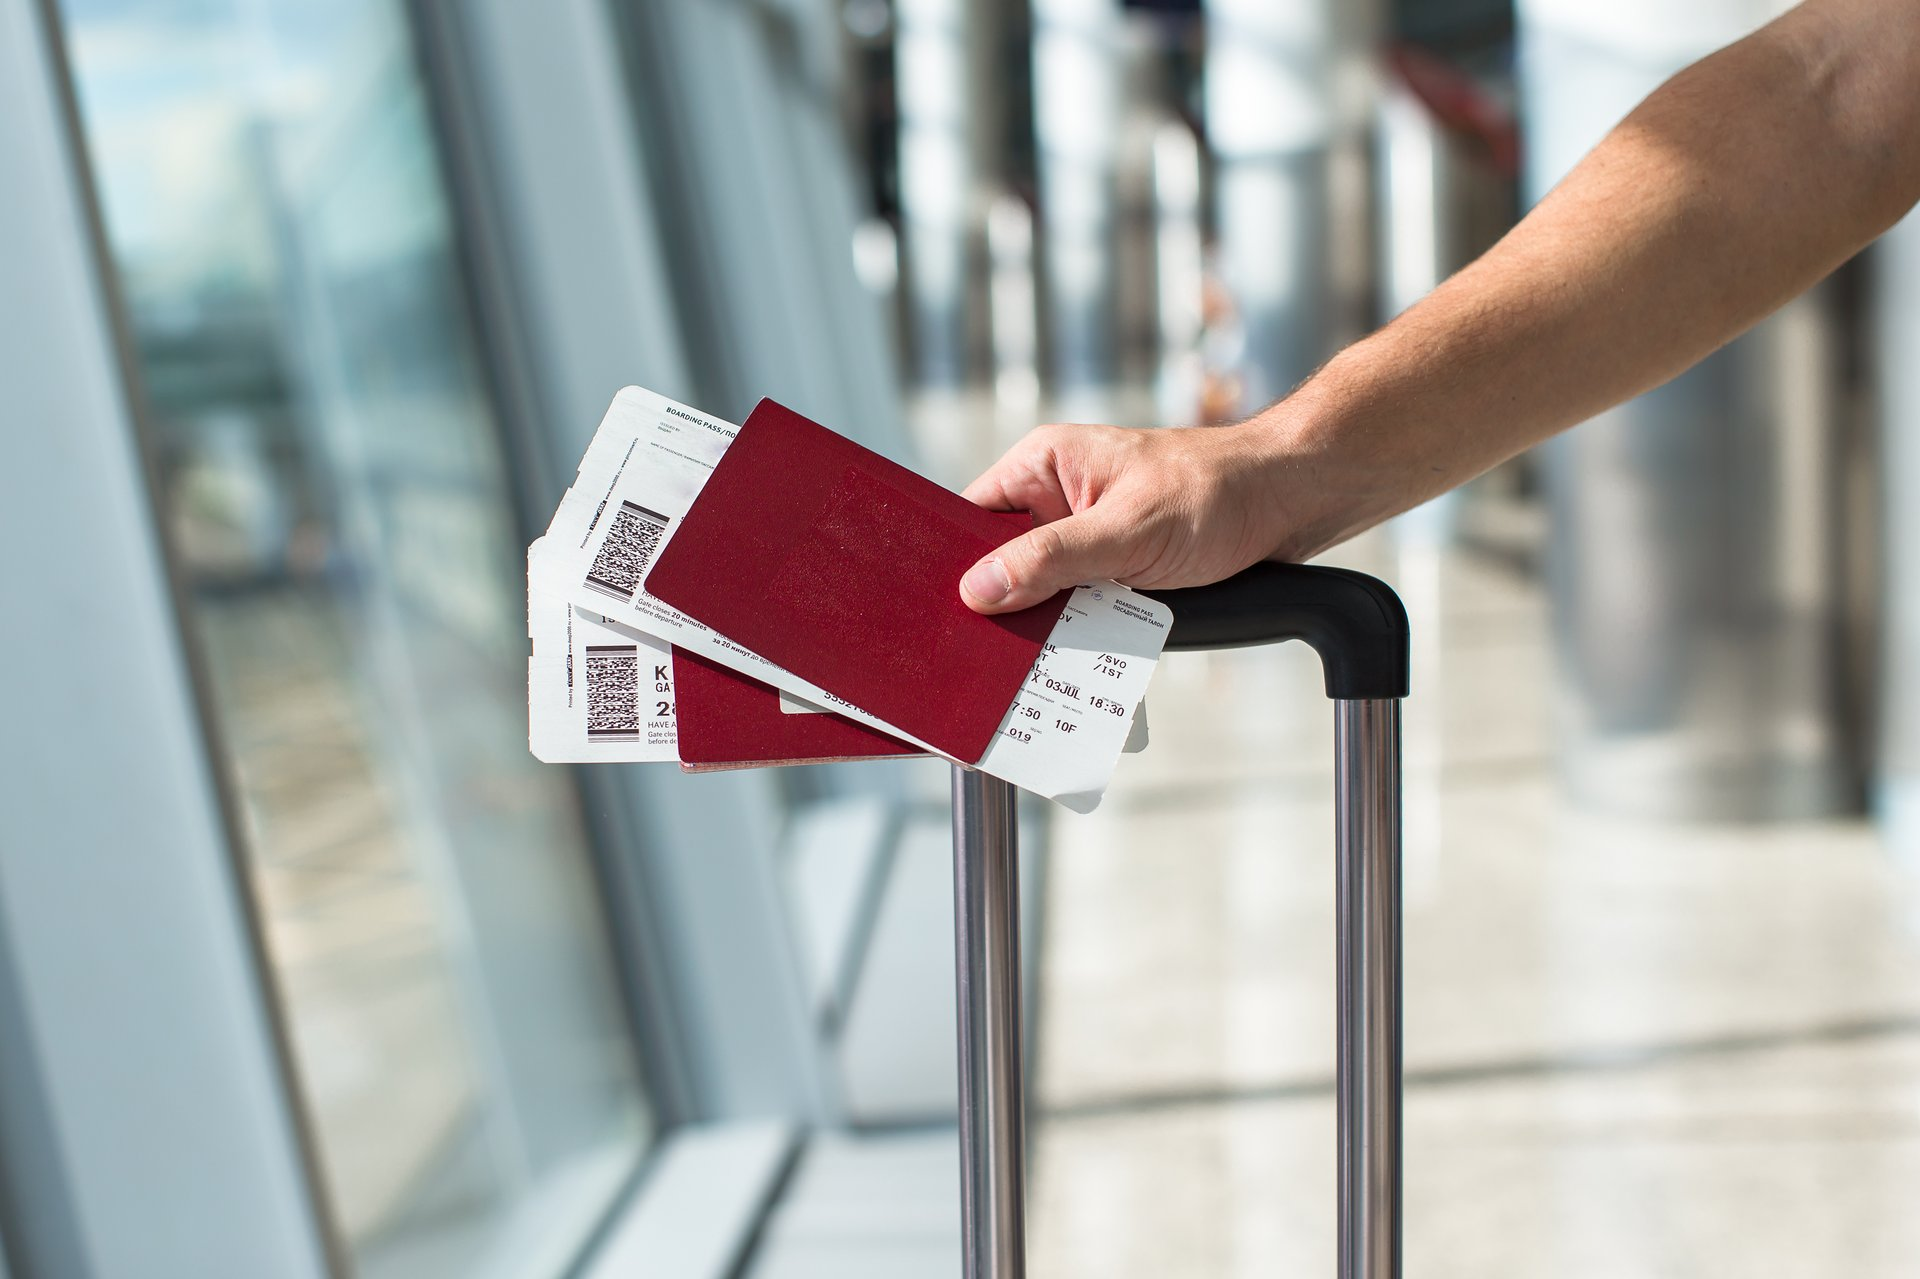 Traveler holding boarding passes and passports at the airport